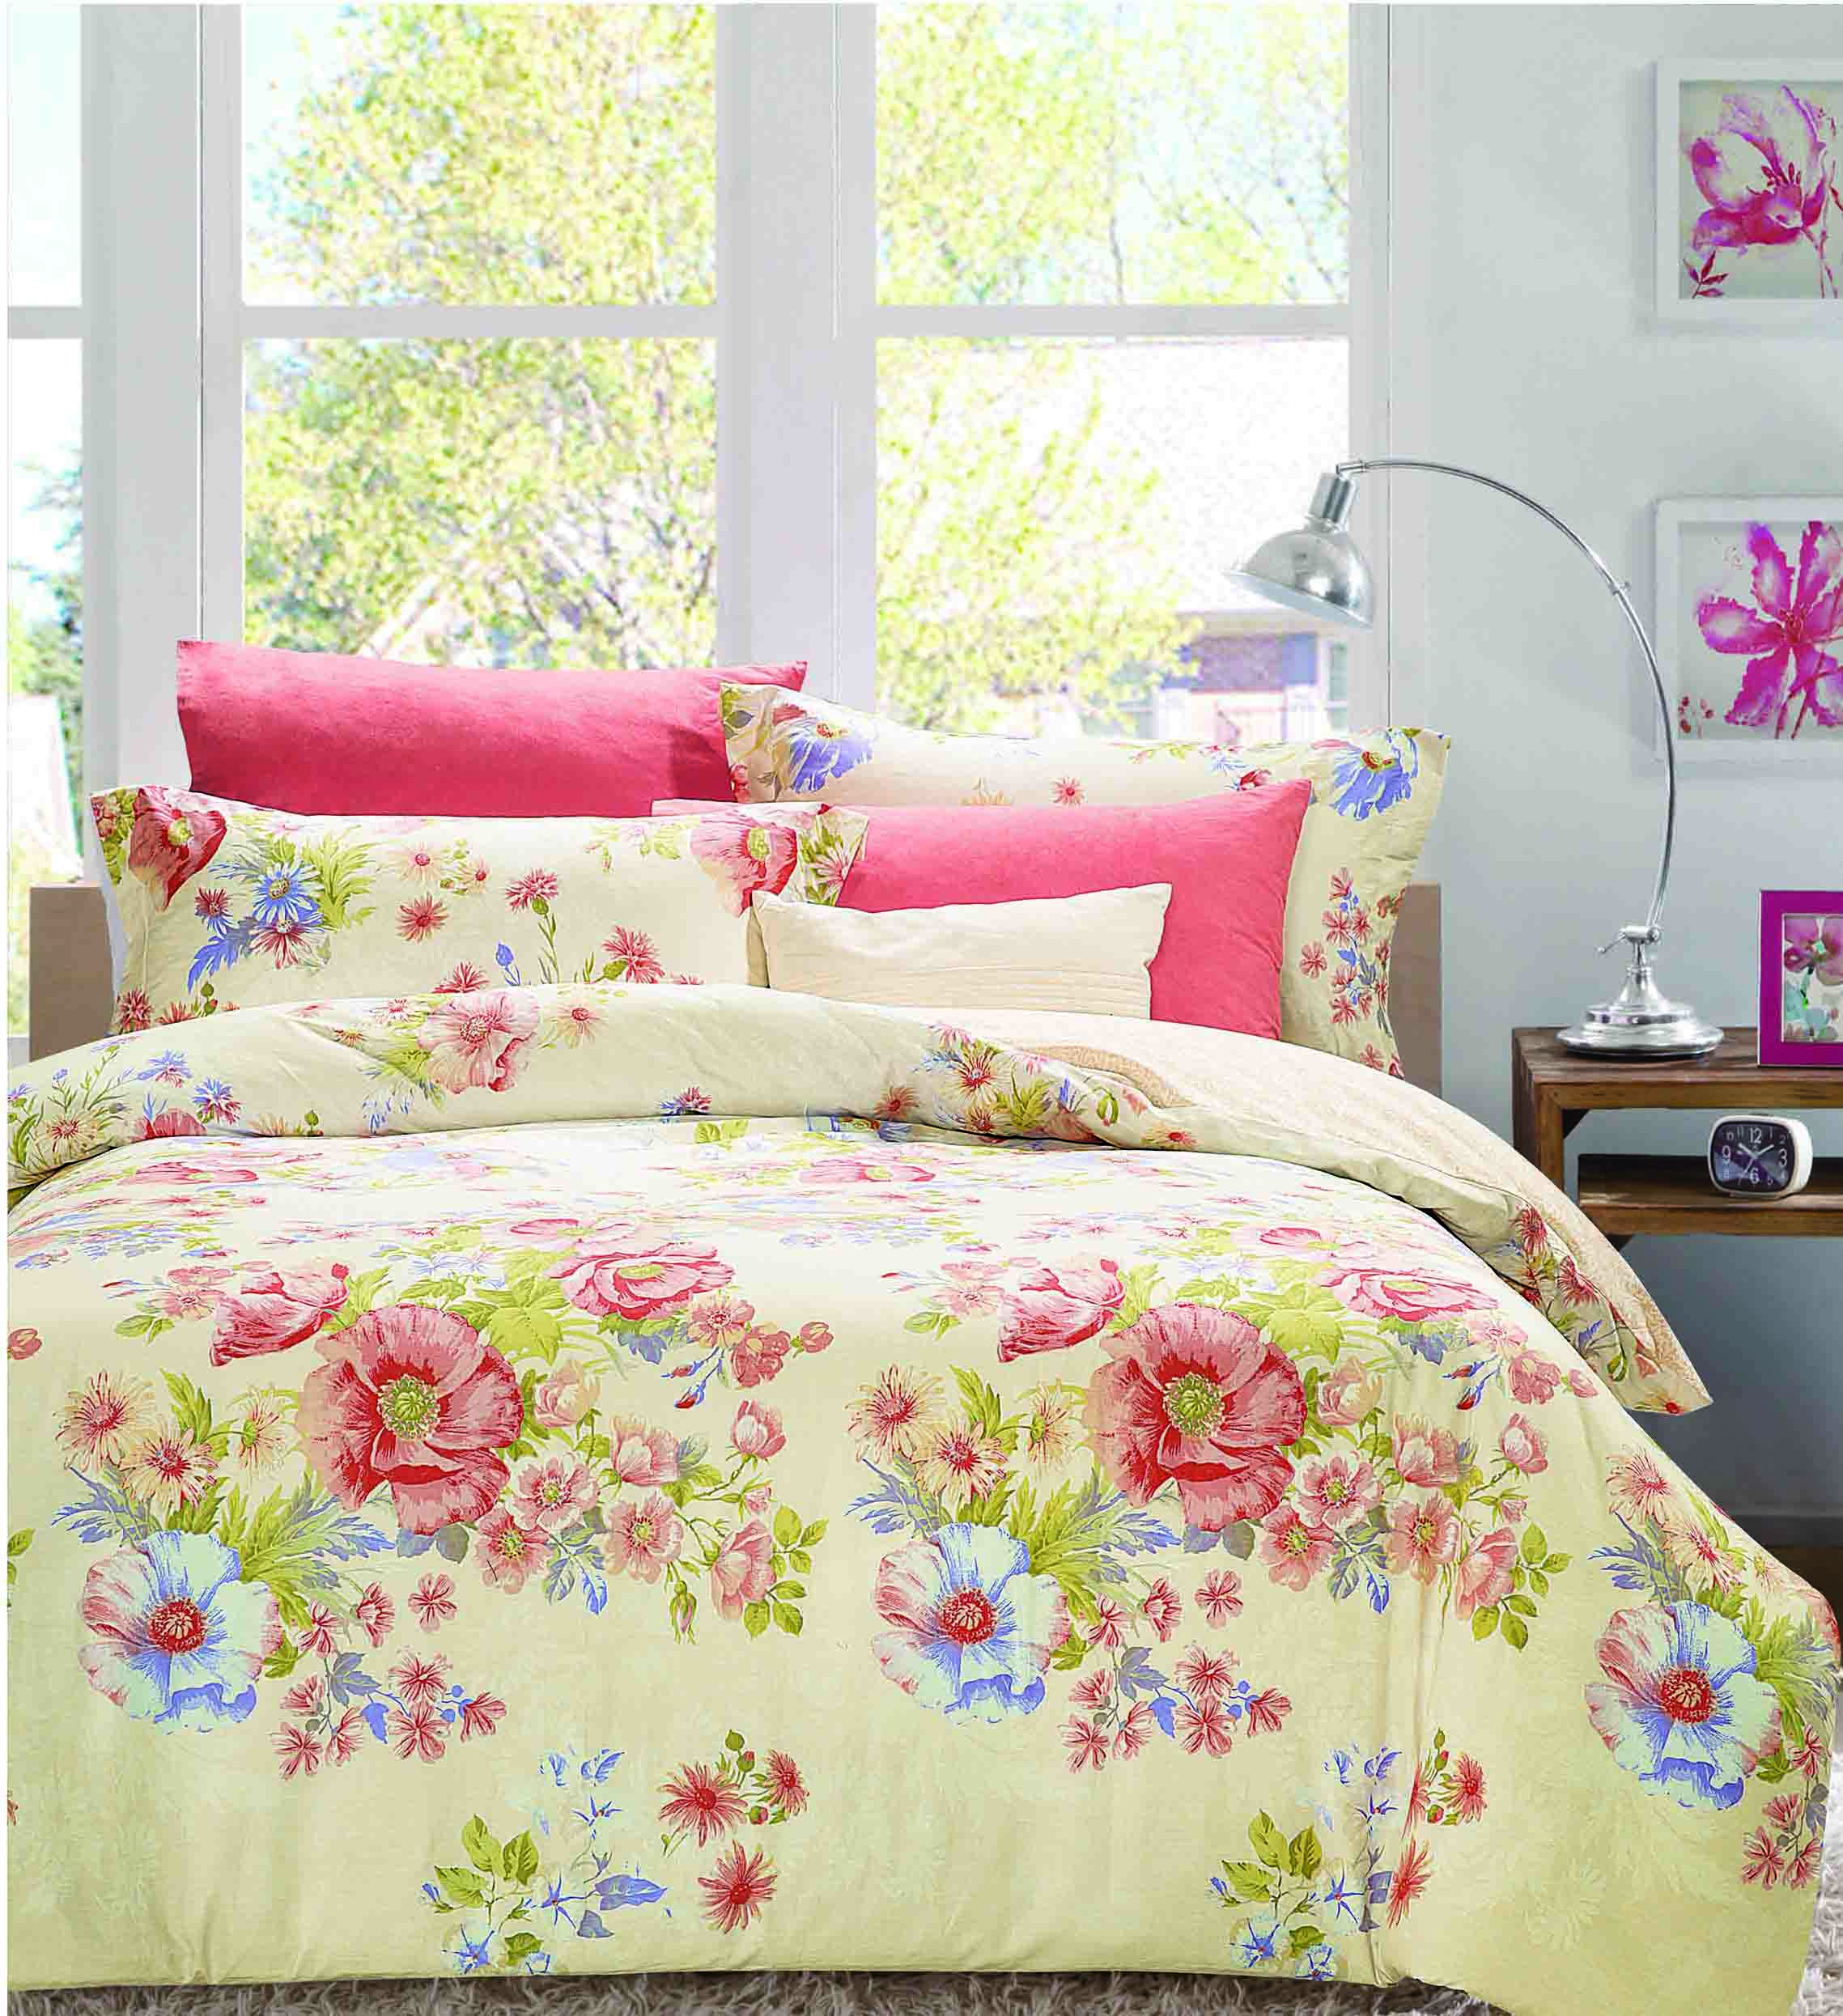 Daphne Vivid Floral Patterns Printed Bedding Set   161136 100% Cotton Printed image64